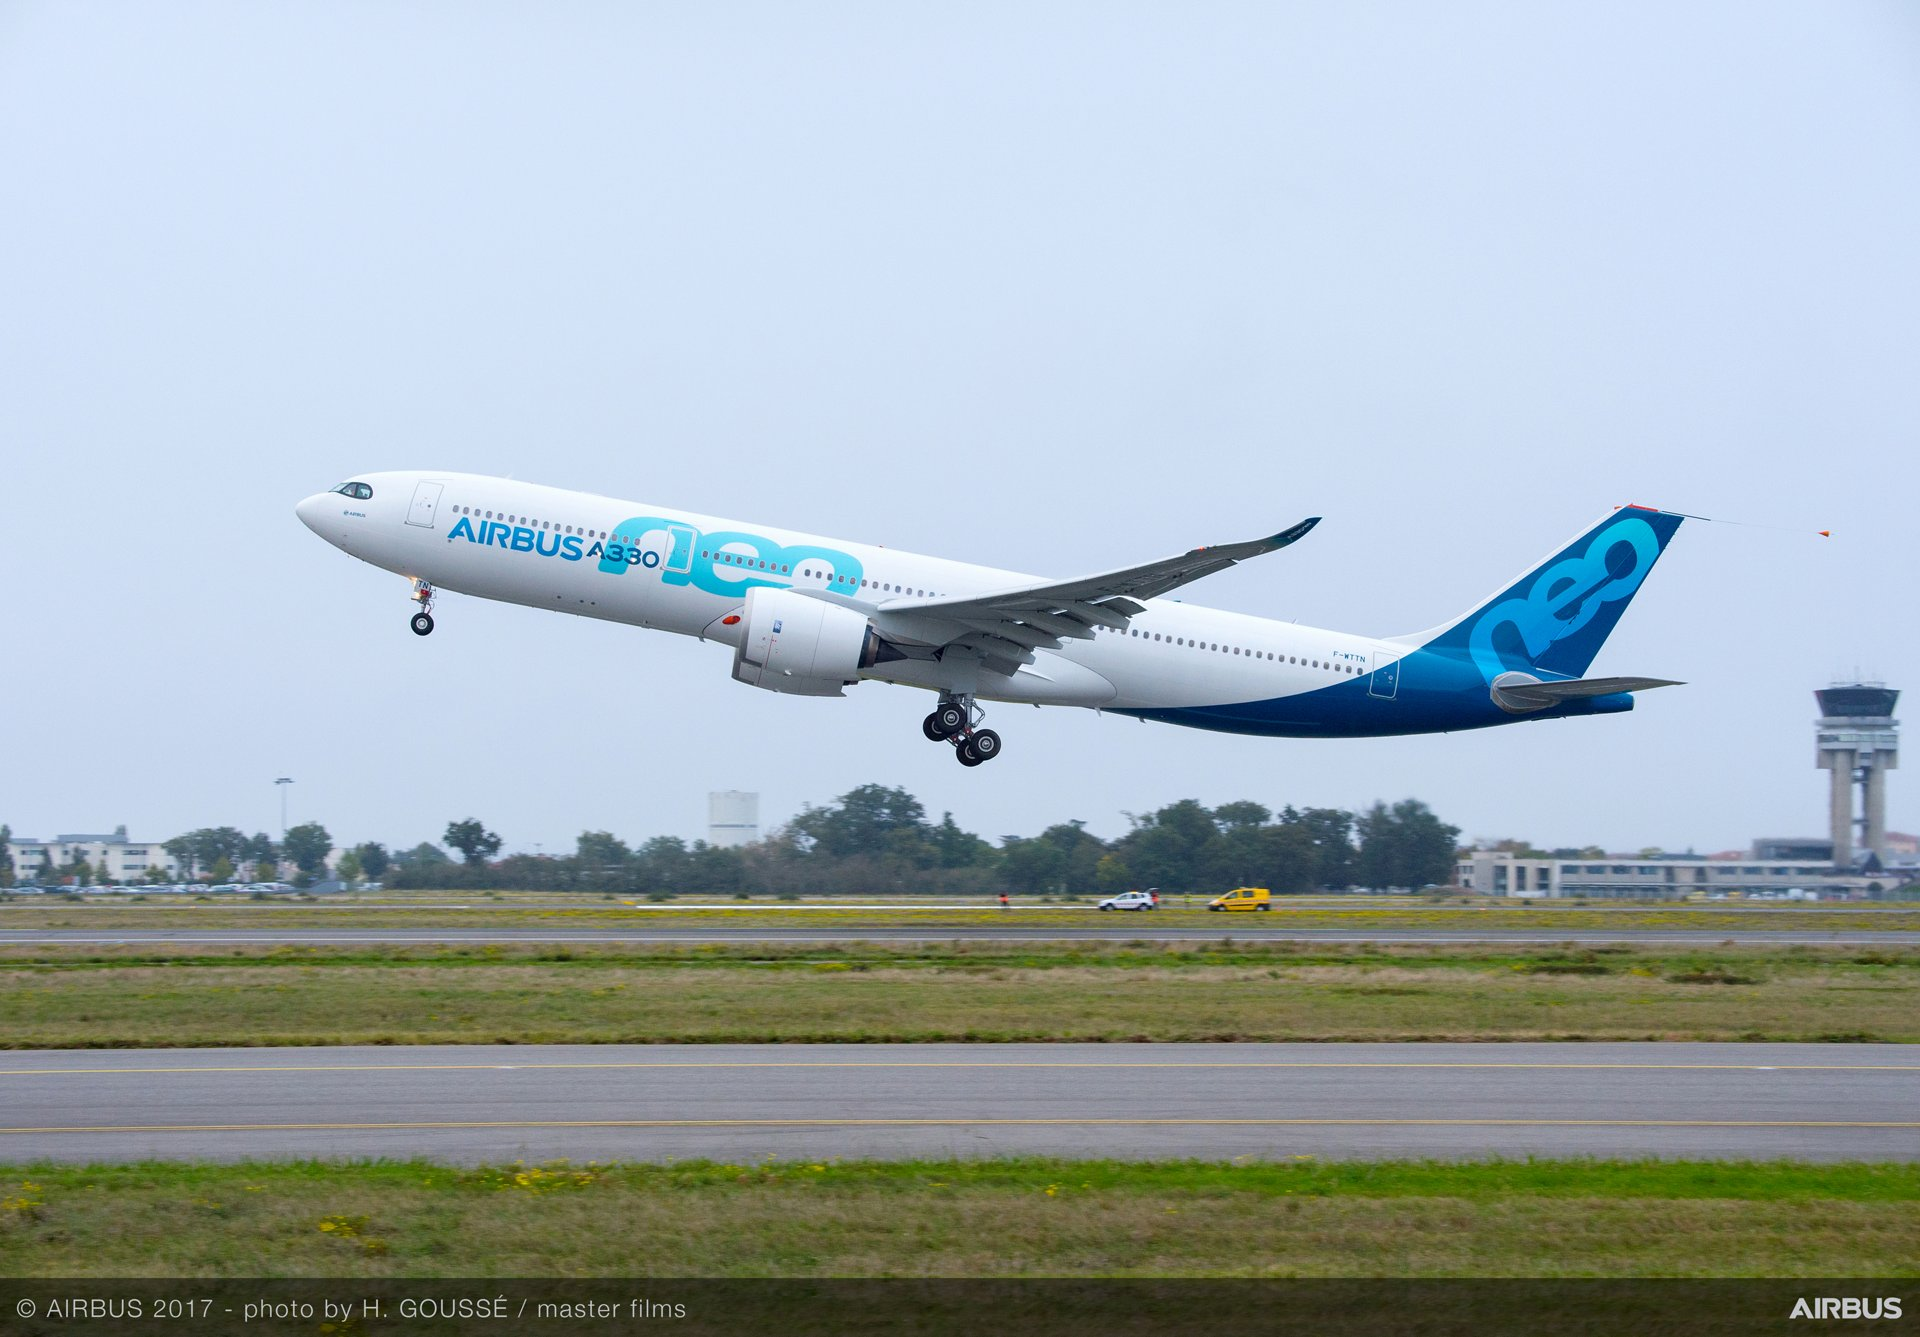 The first A330neo took off 19 October 2017 at Blagnac in Toulouse, France at 9:57 a.m. local time, for its maiden flight performed over southwestern France